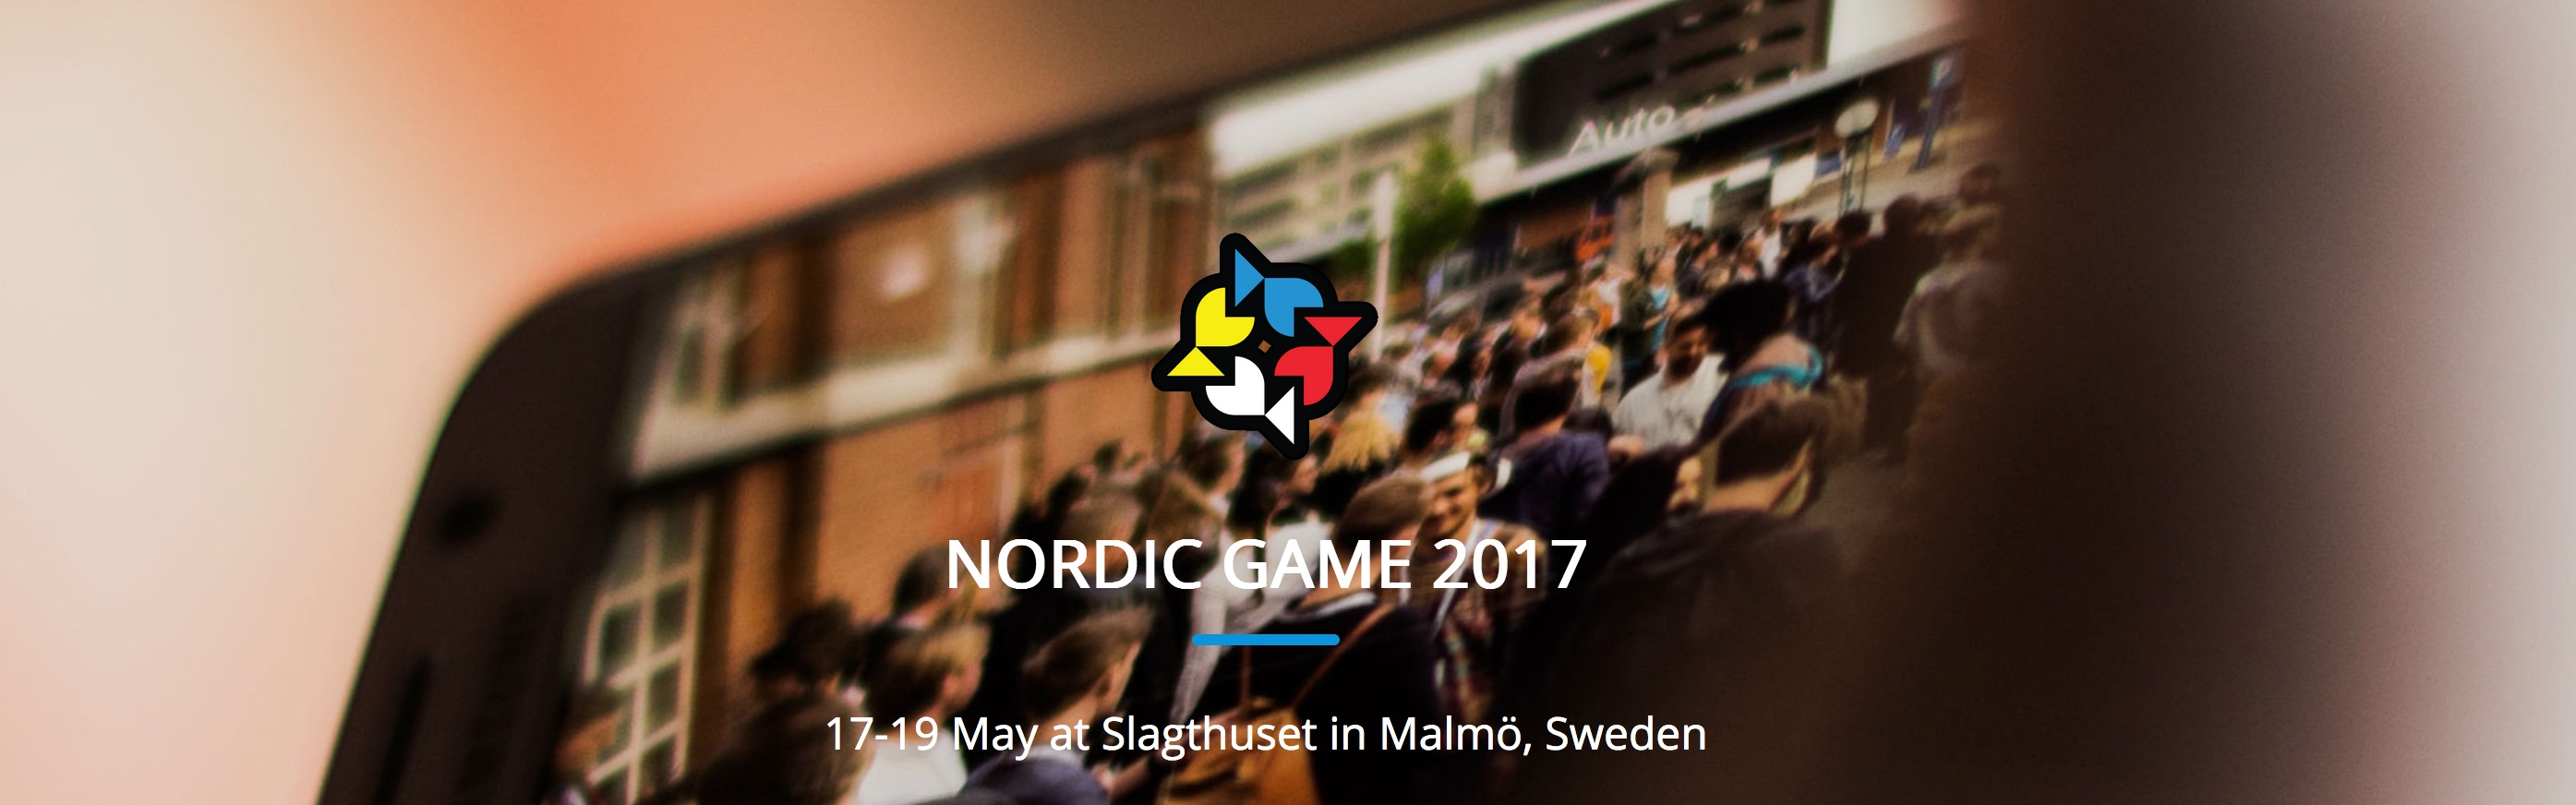 Nordic Game 2017